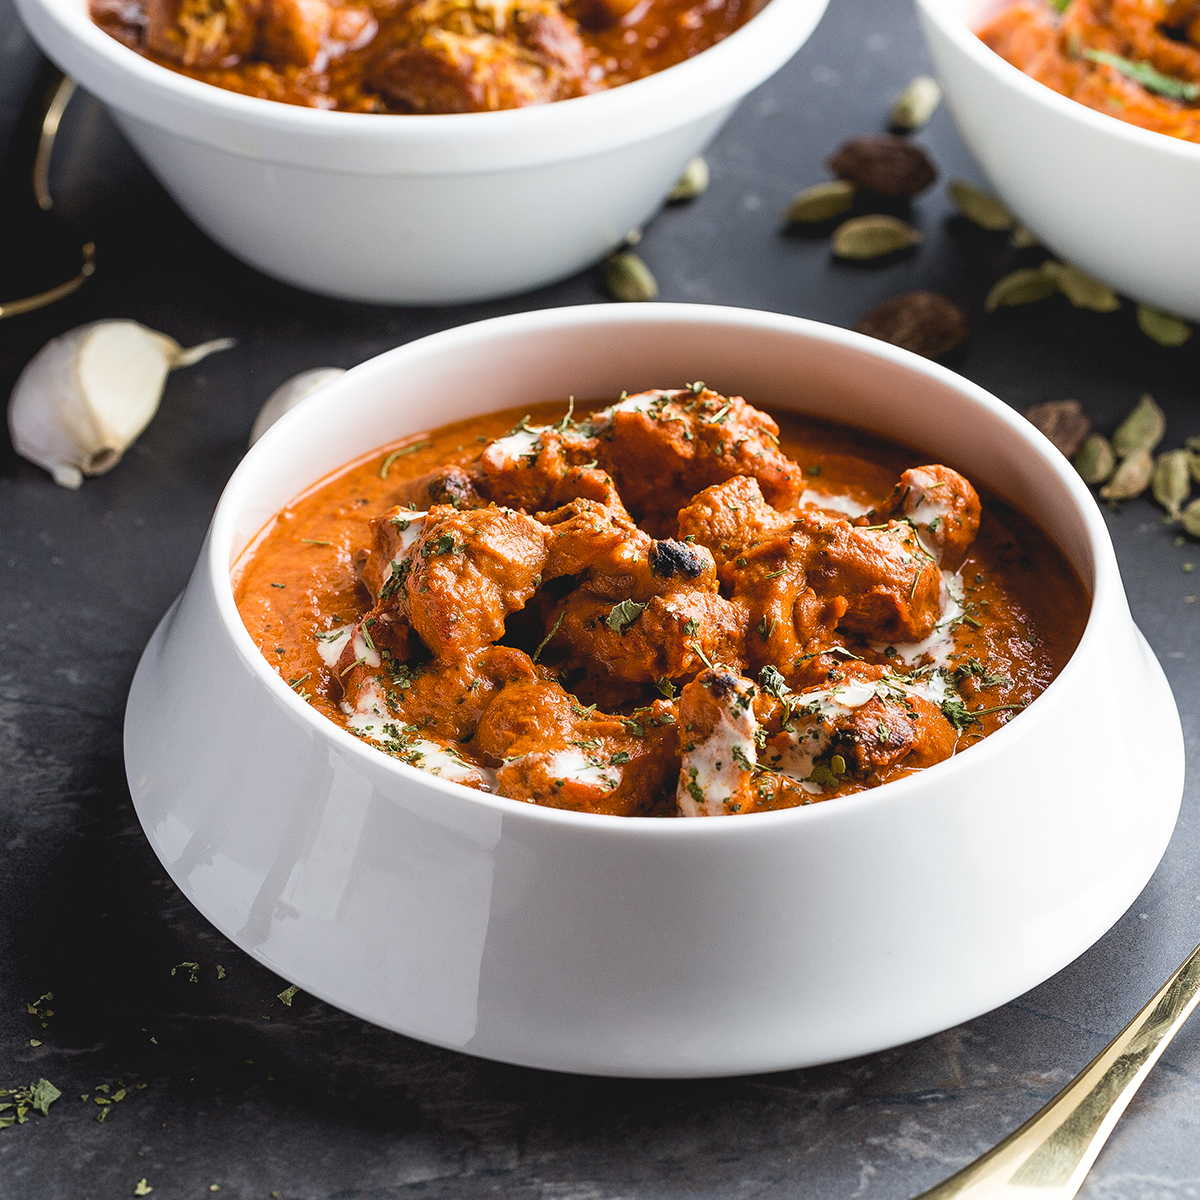 THE STORY OF HUGELY POPULAR BUTTER CHICKEN